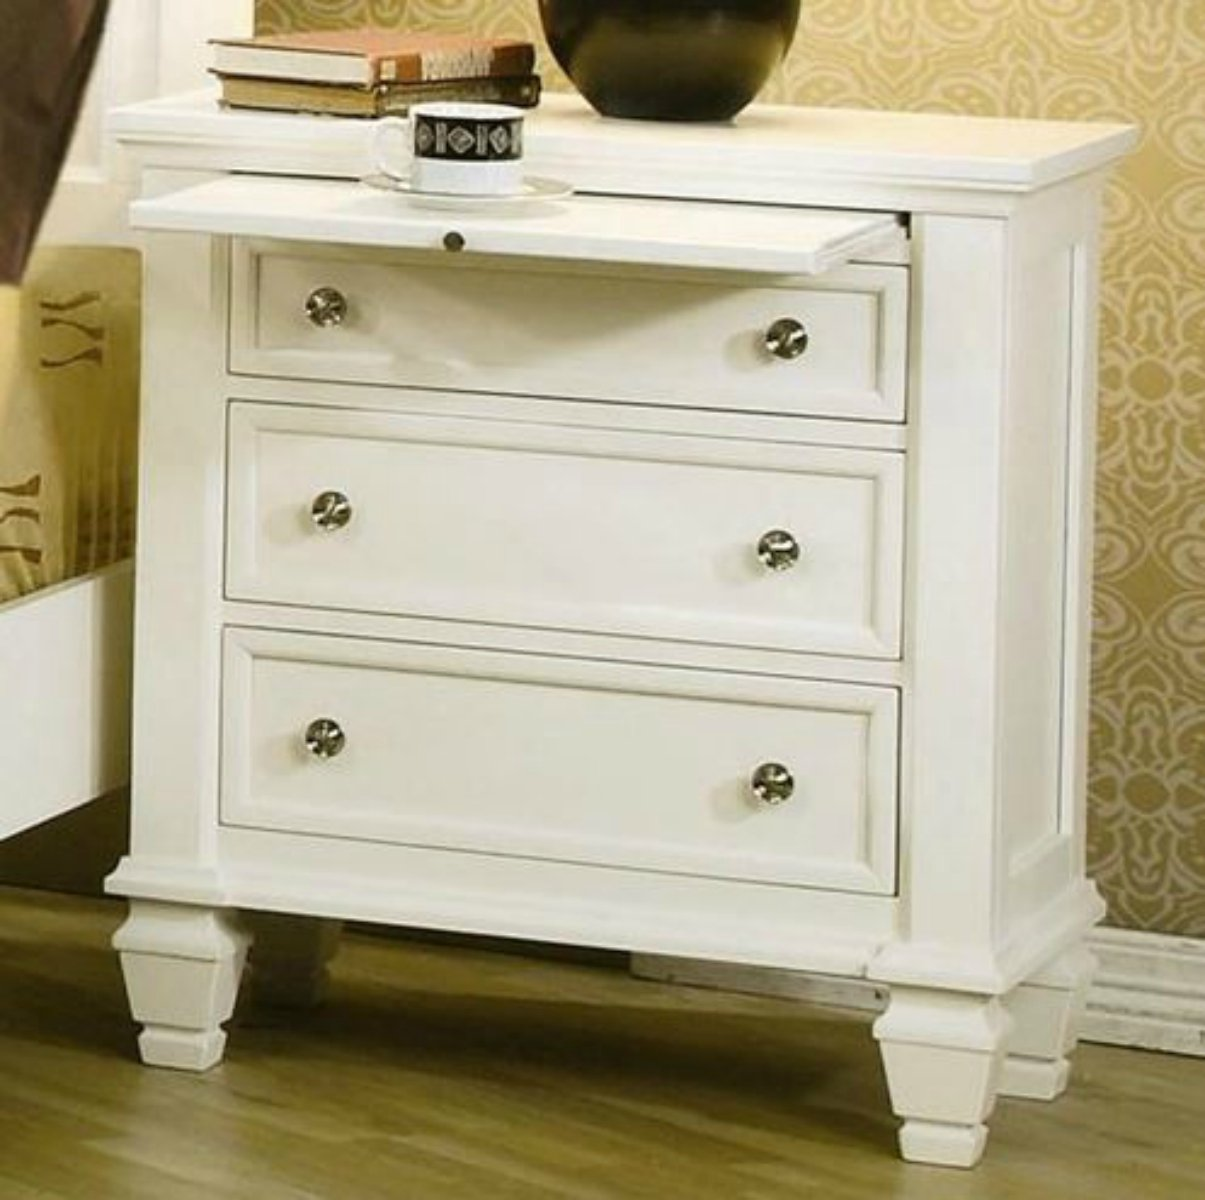 Wildon 3 Drawer Nightstand in White Finish - This Traditional Wood Accent Chest Is a Great Addition in Your Home Office or Bedroom - This Furniture Also Has a Pull-out Tray!